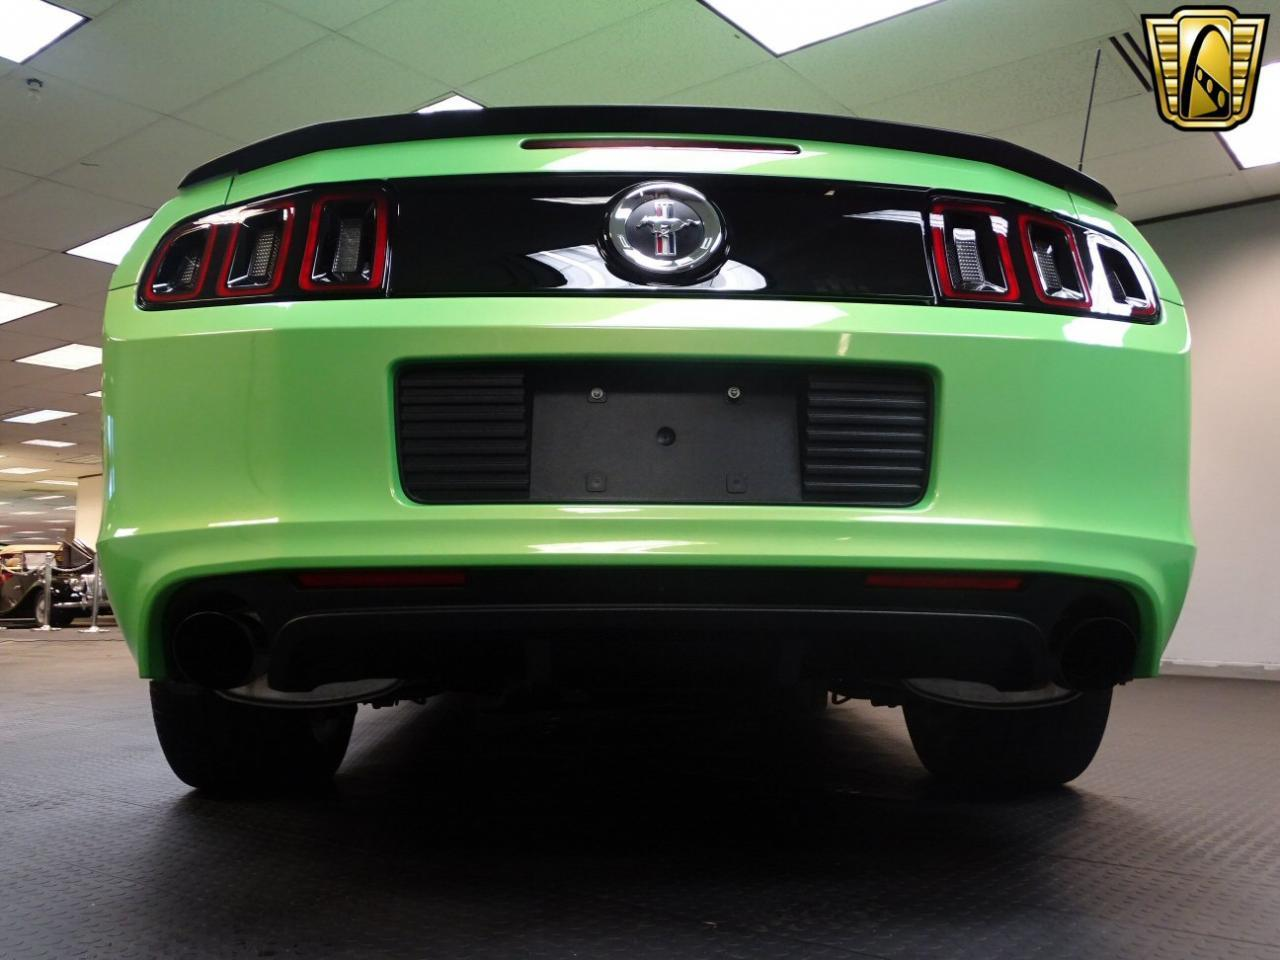 Large Picture of '13 Mustang located in Dearborn Michigan - $40,995.00 Offered by Gateway Classic Cars - Detroit - MGI5